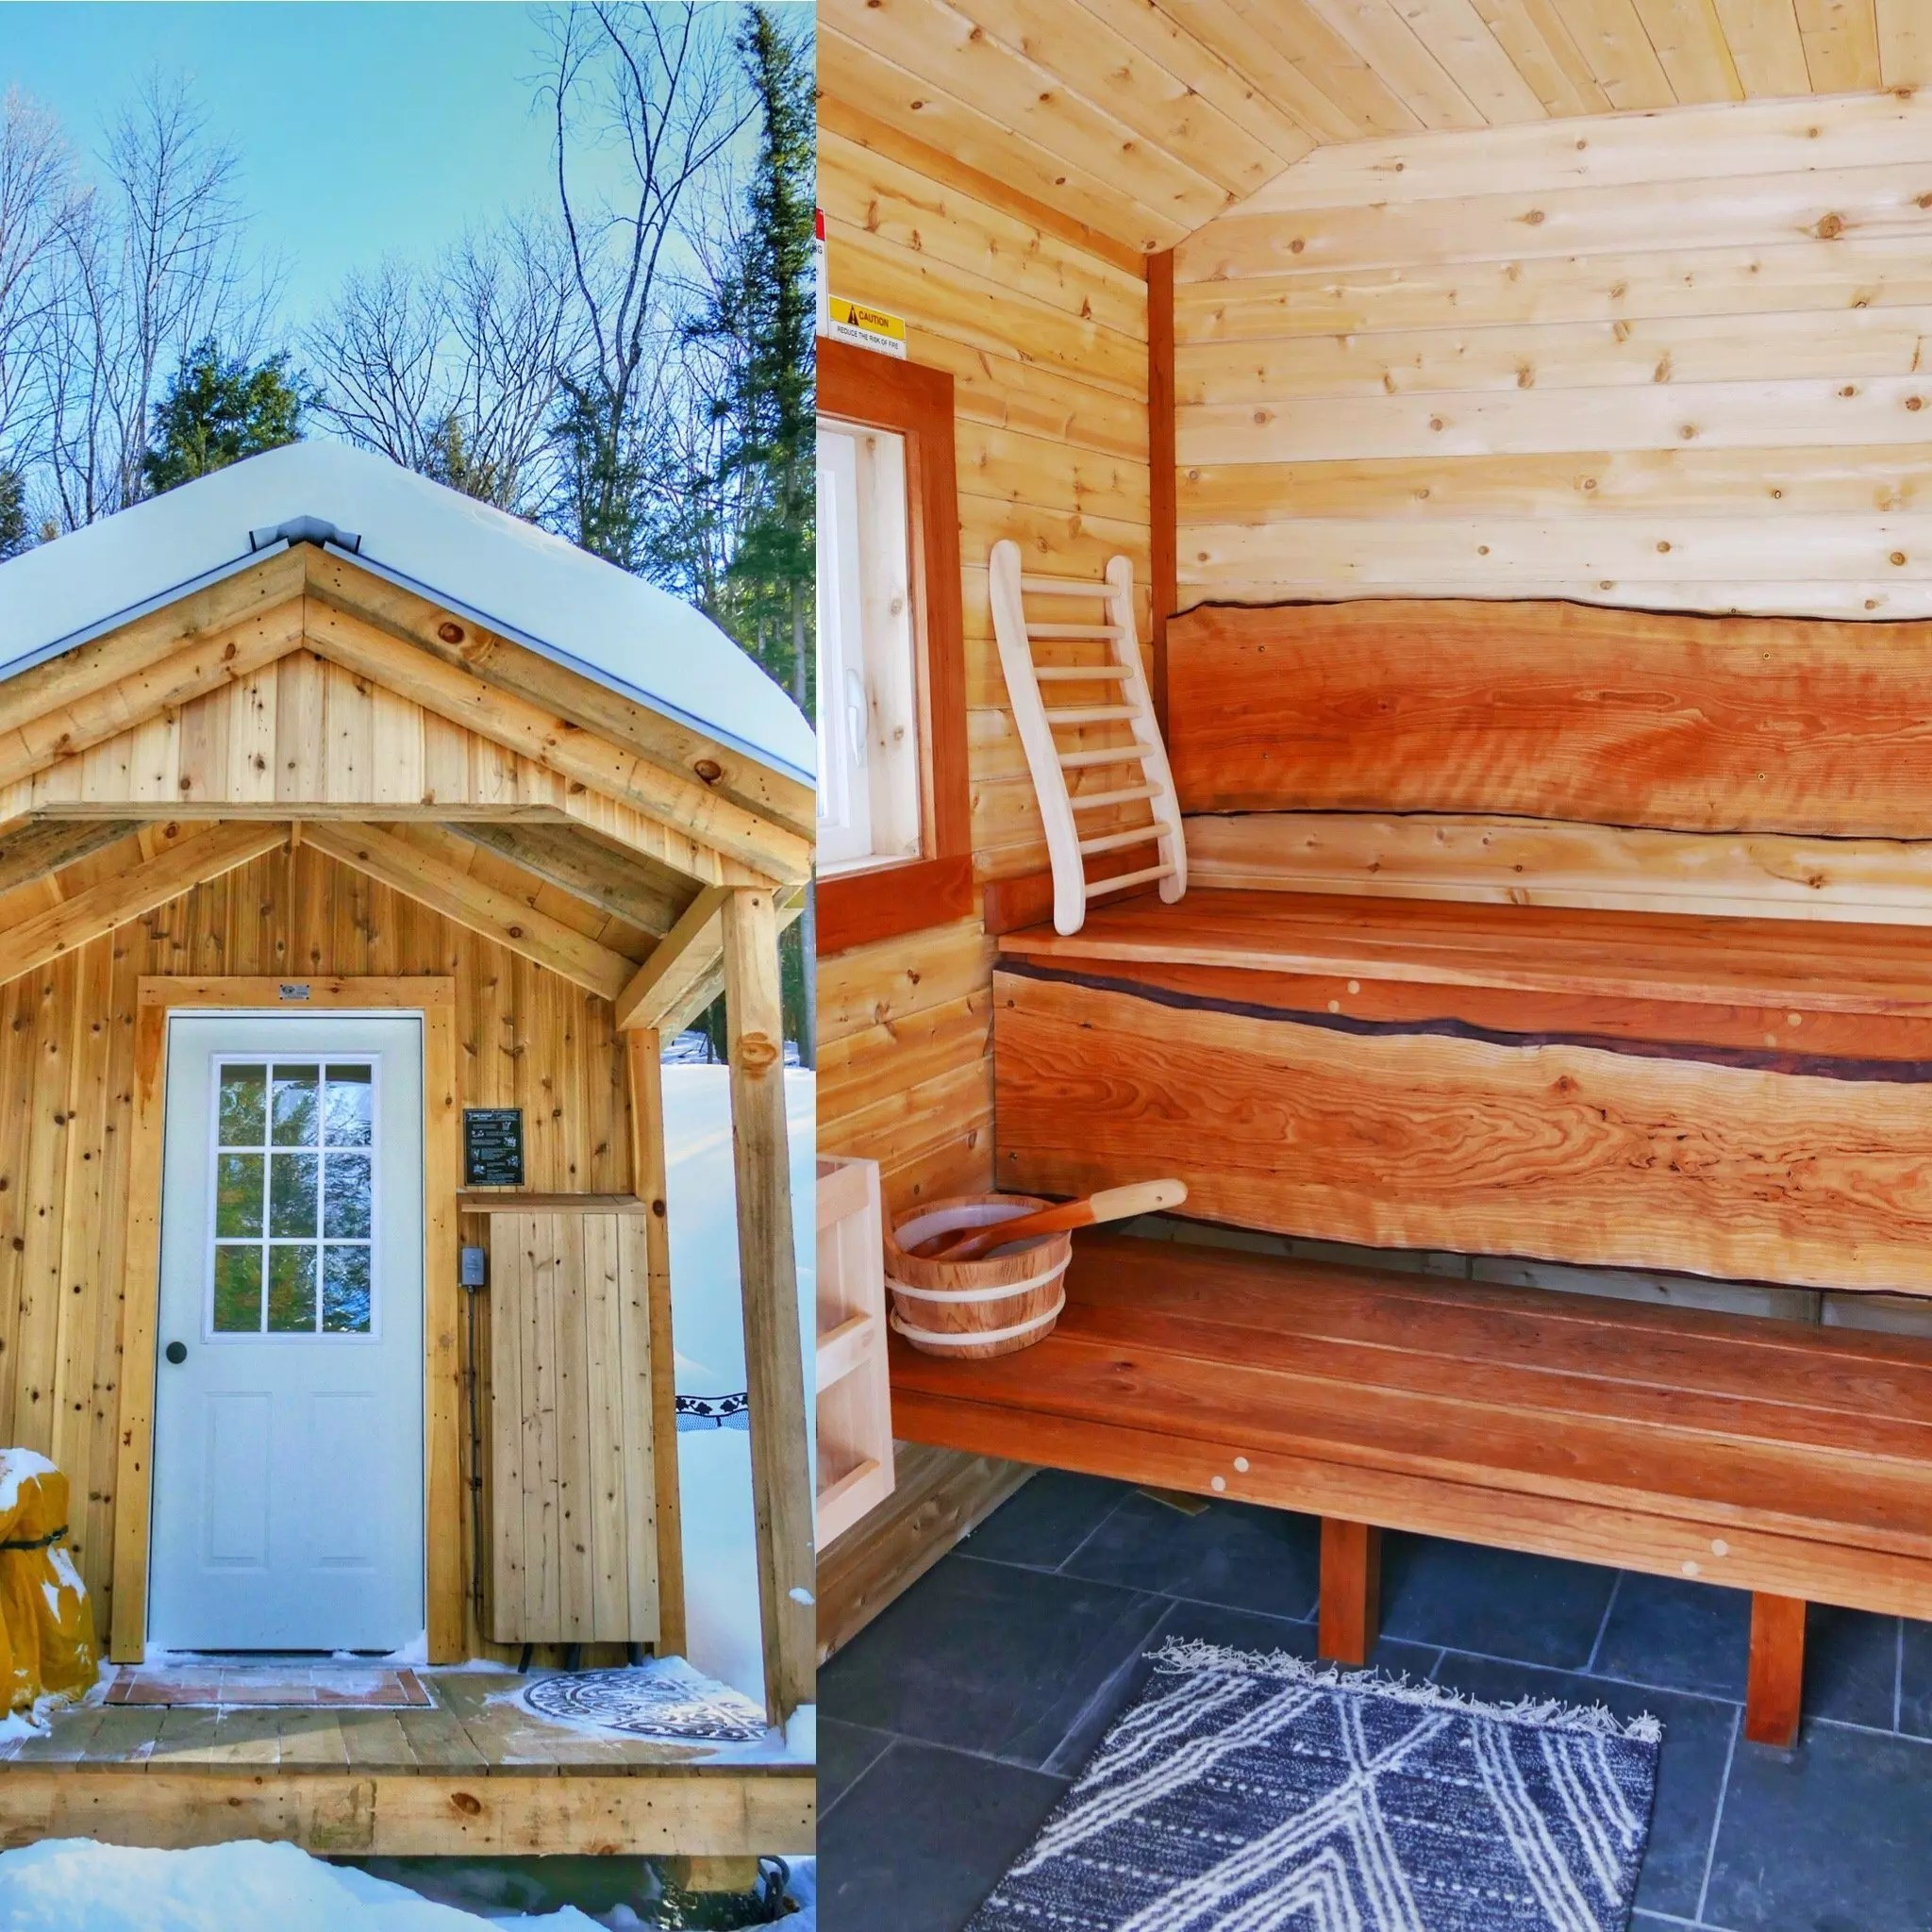 Outdoor Finnish sauna at Falcon House